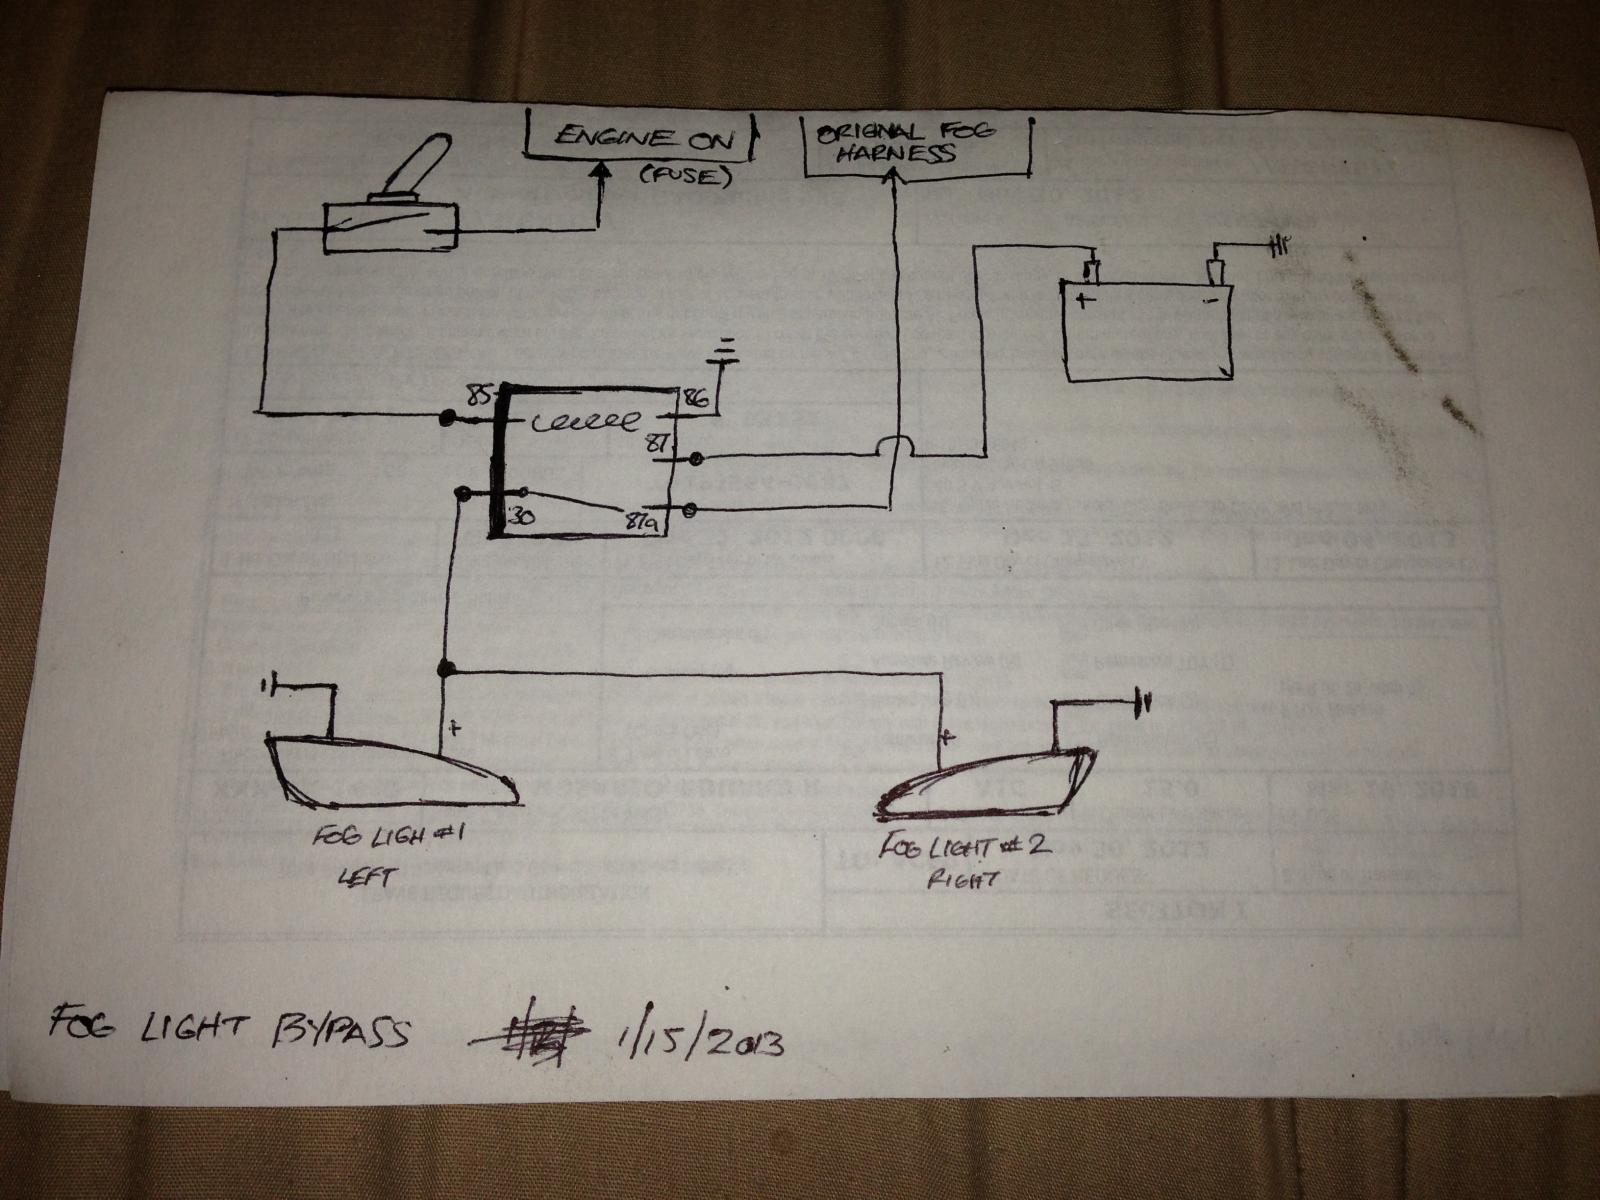 Simple Wiring Diagram To Bypass Foglights (Works W/o Headlights Or W - Fog Light Wiring Diagram